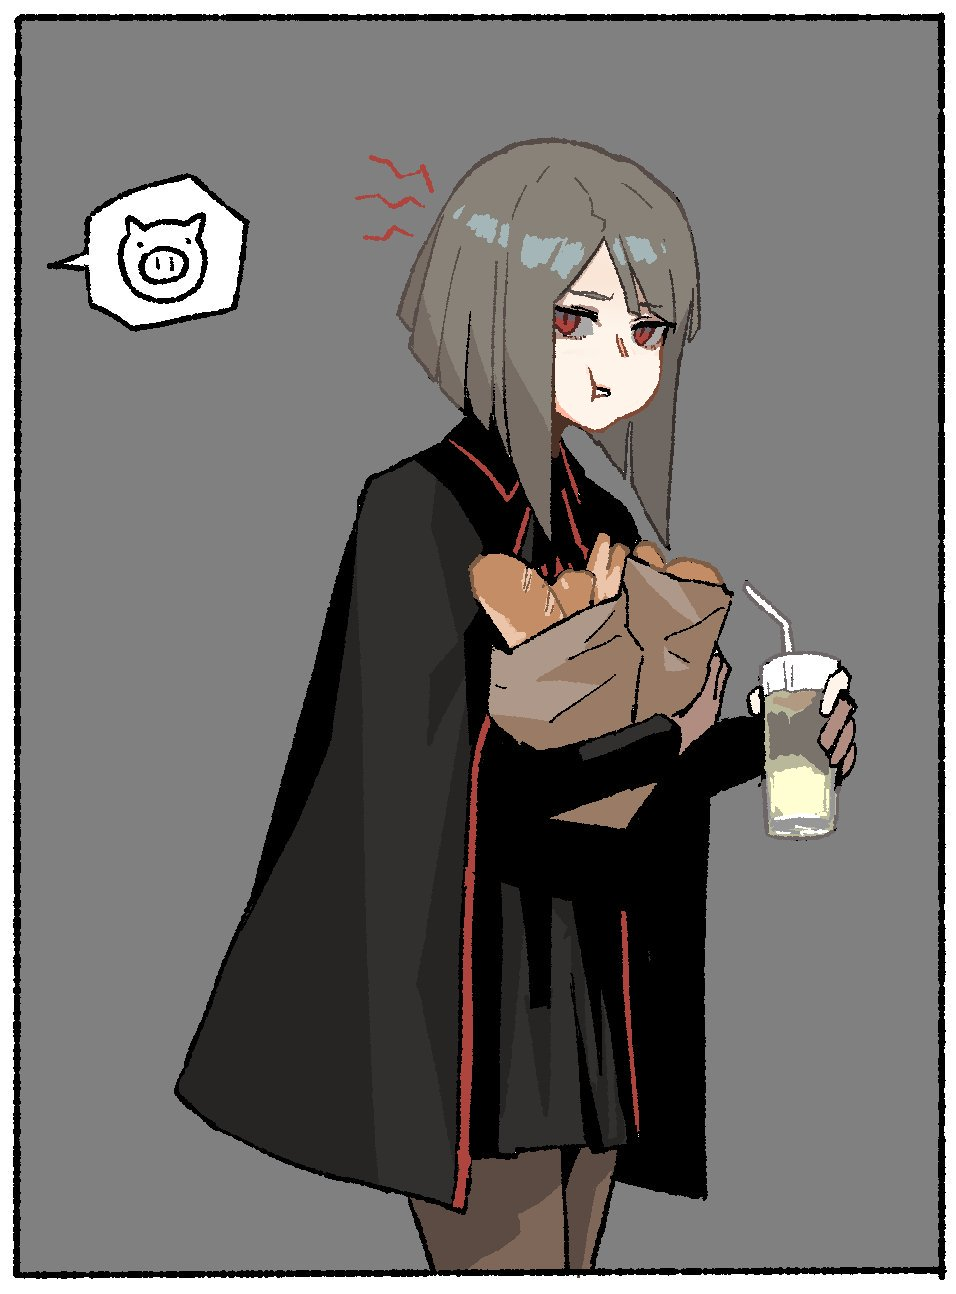 1girl :t bag black_cape black_skirt bob_cut border bread brown_legwear cape collared_cape cowboy_shot cup drinking_glass drinking_straw eating food from_side gogalking grey_hair grocery_bag highres holding holding_bag holding_cup looking_at_viewer looking_to_the_side medium_hair original out_of_frame pantyhose paper_bag pleated_skirt red_eyes rosna_(gogalking) shopping_bag skirt solo spoken_animal standing white_border